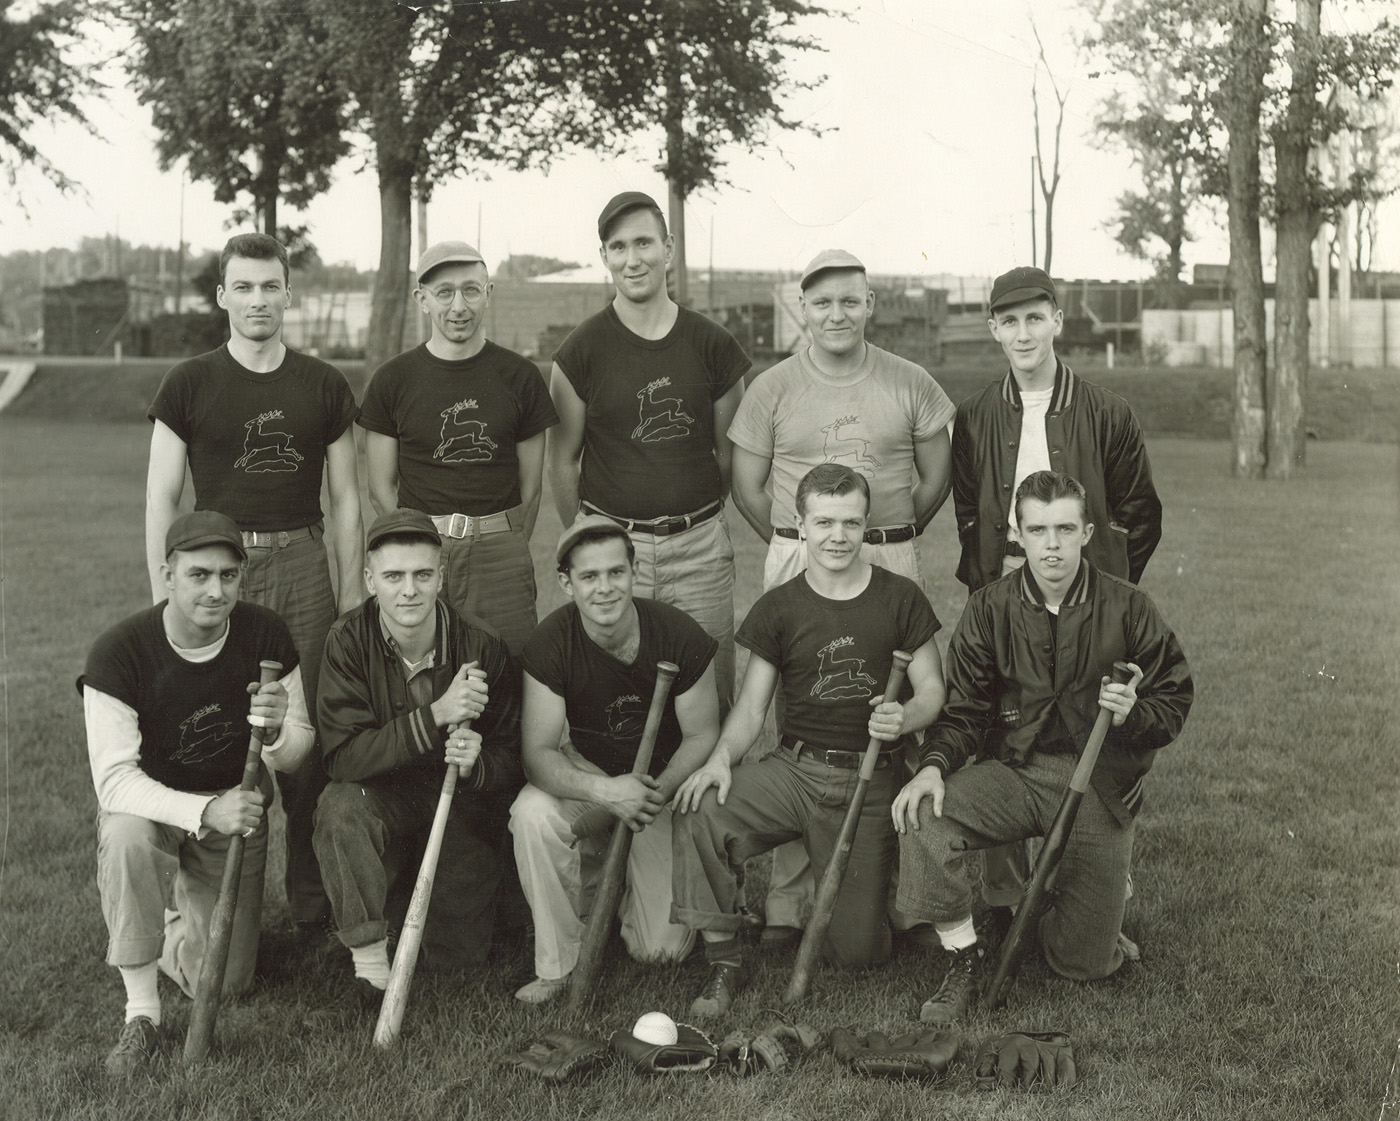 My father, Deane Gunderson, played on this John Deere softball team during his 1940 to 1945 employment with John Deere in Waterloo, Iowa.  (Click photo to enlarge.)